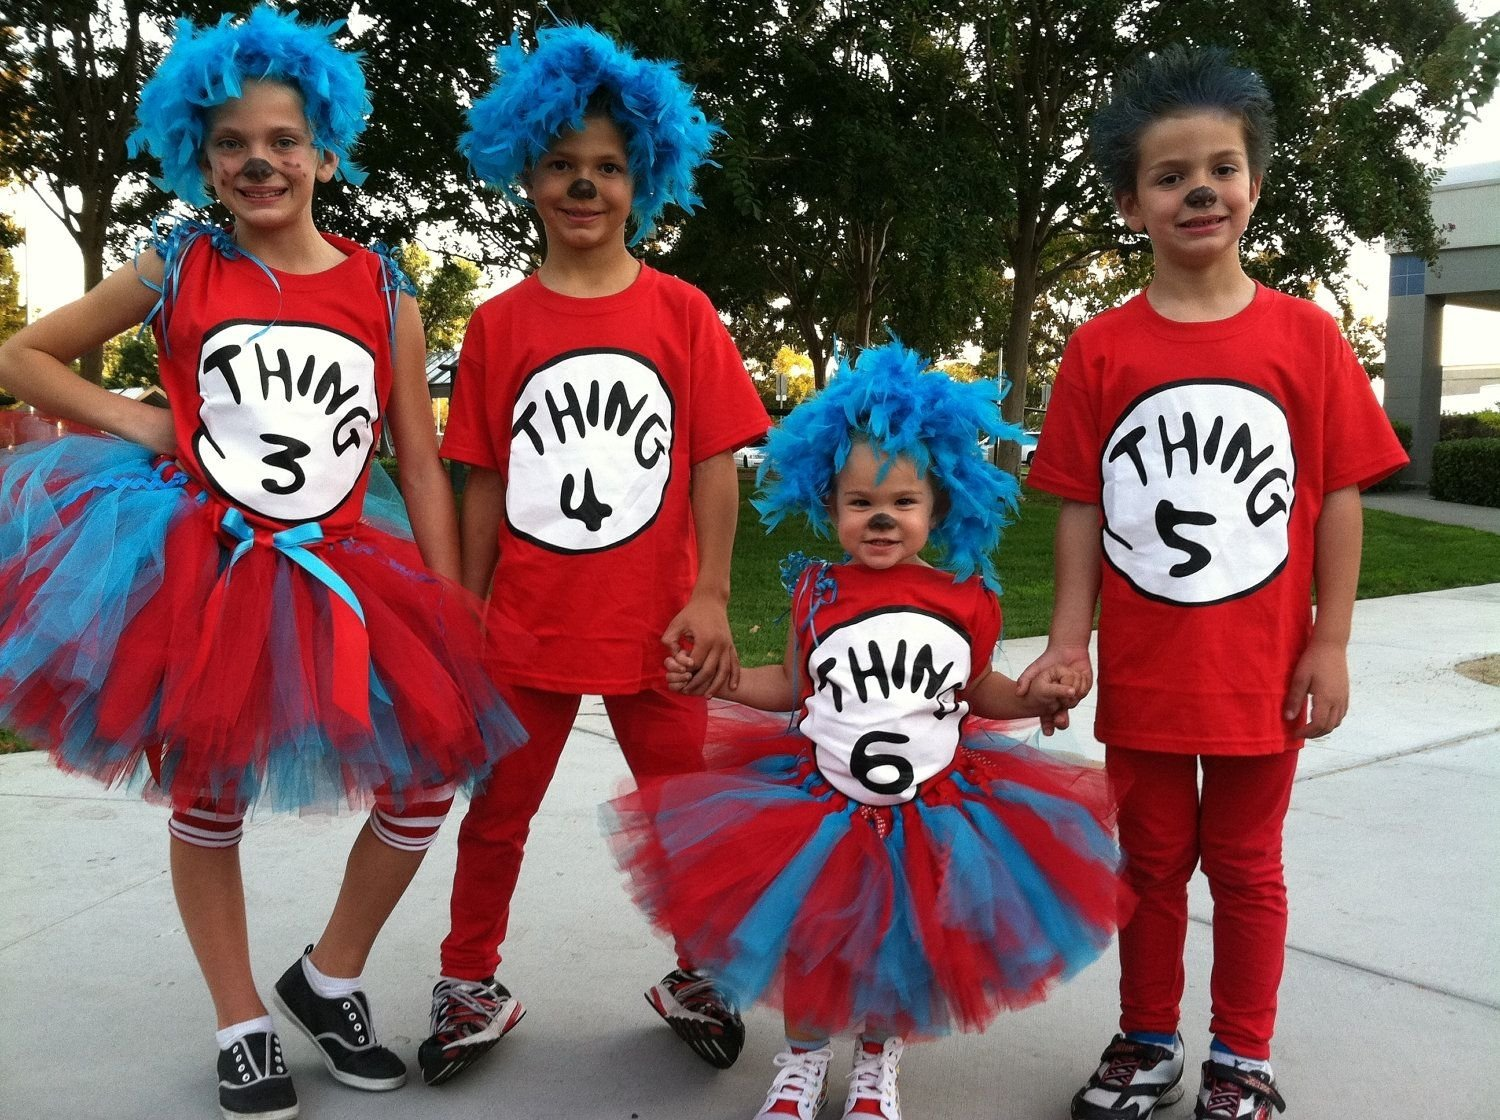 10 Best Group Costume Ideas For 4 People adorable one year old thing 1 and three year old thing 2 costumes 2020